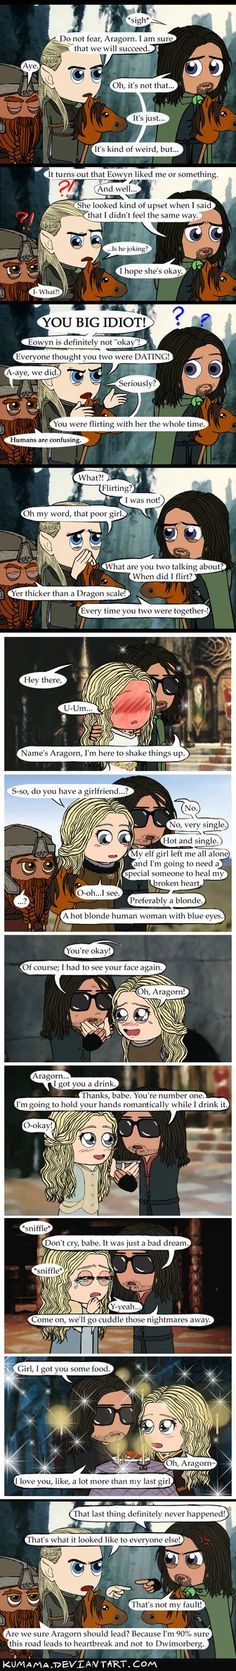 AAAHAHHHAHAHAHAHAHAHAHAHAHAHAHAHAHAAHHAHAHAAHAH - Men. -_- Freaking Aragorns all over the place...LOTR: Lead On by Kumama on DeviantArt